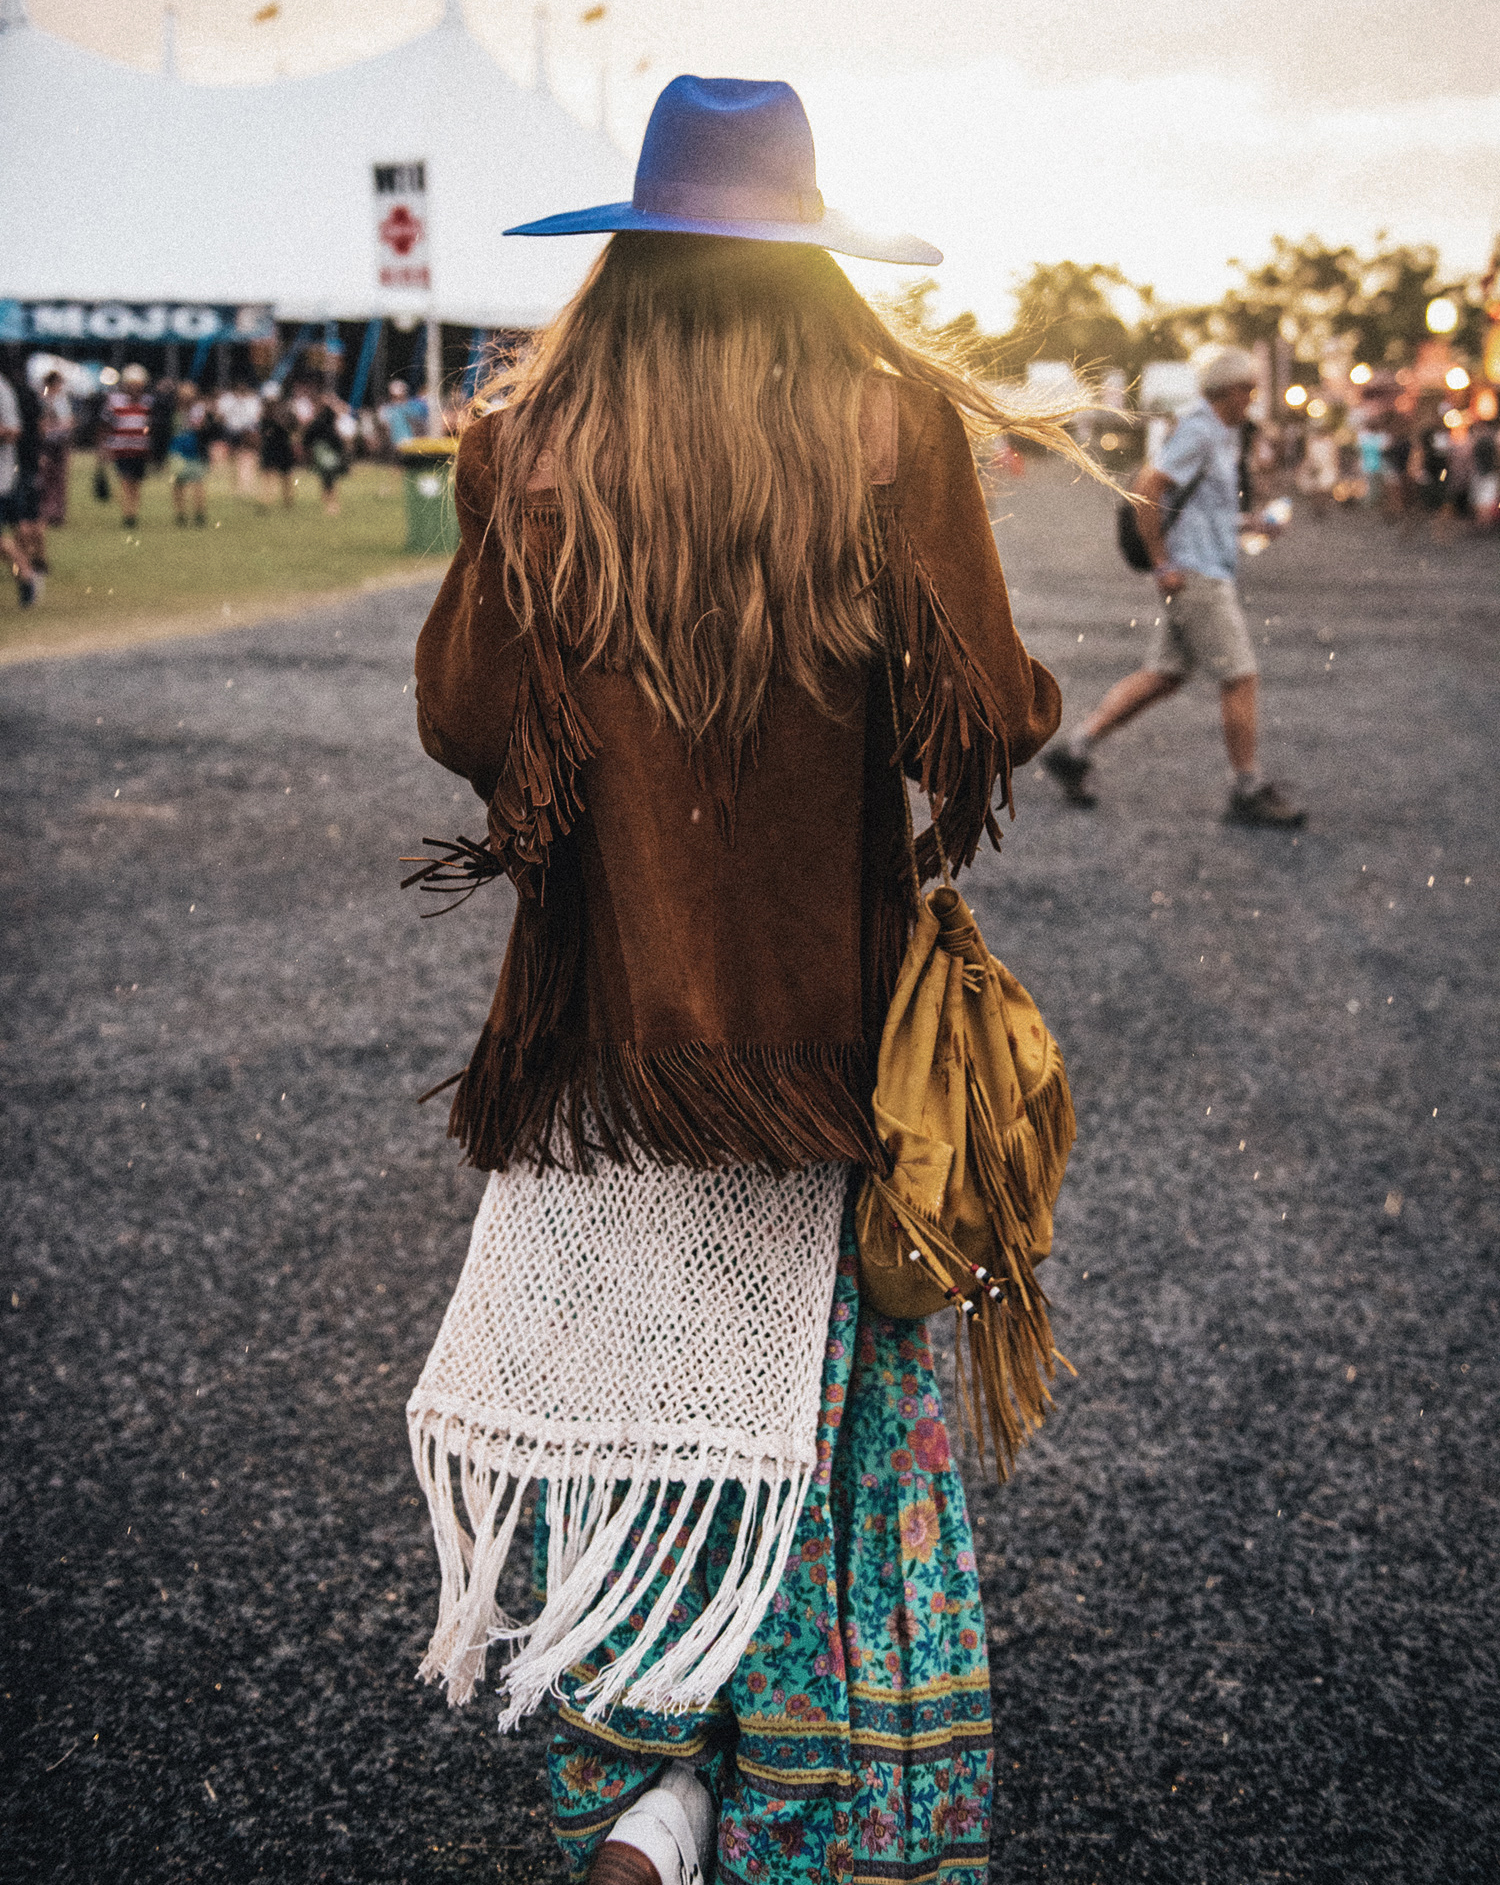 Style blogger Lisa Hamilton from See Want Shop compiling the best Coachella outfits with a fringe jacket